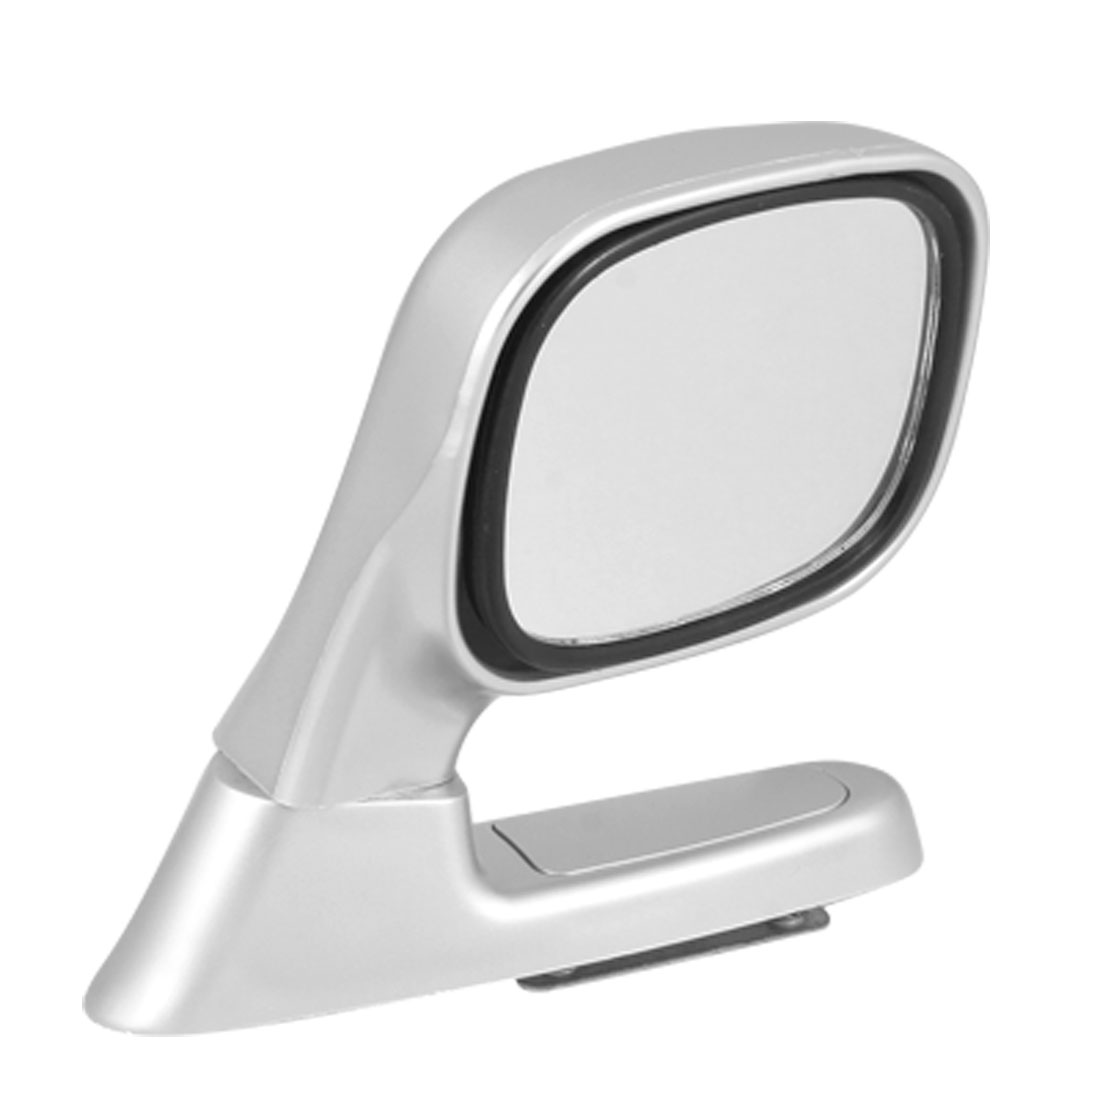 Angle Adjustable Right Side Silver Tone Assistant Mirror for Car